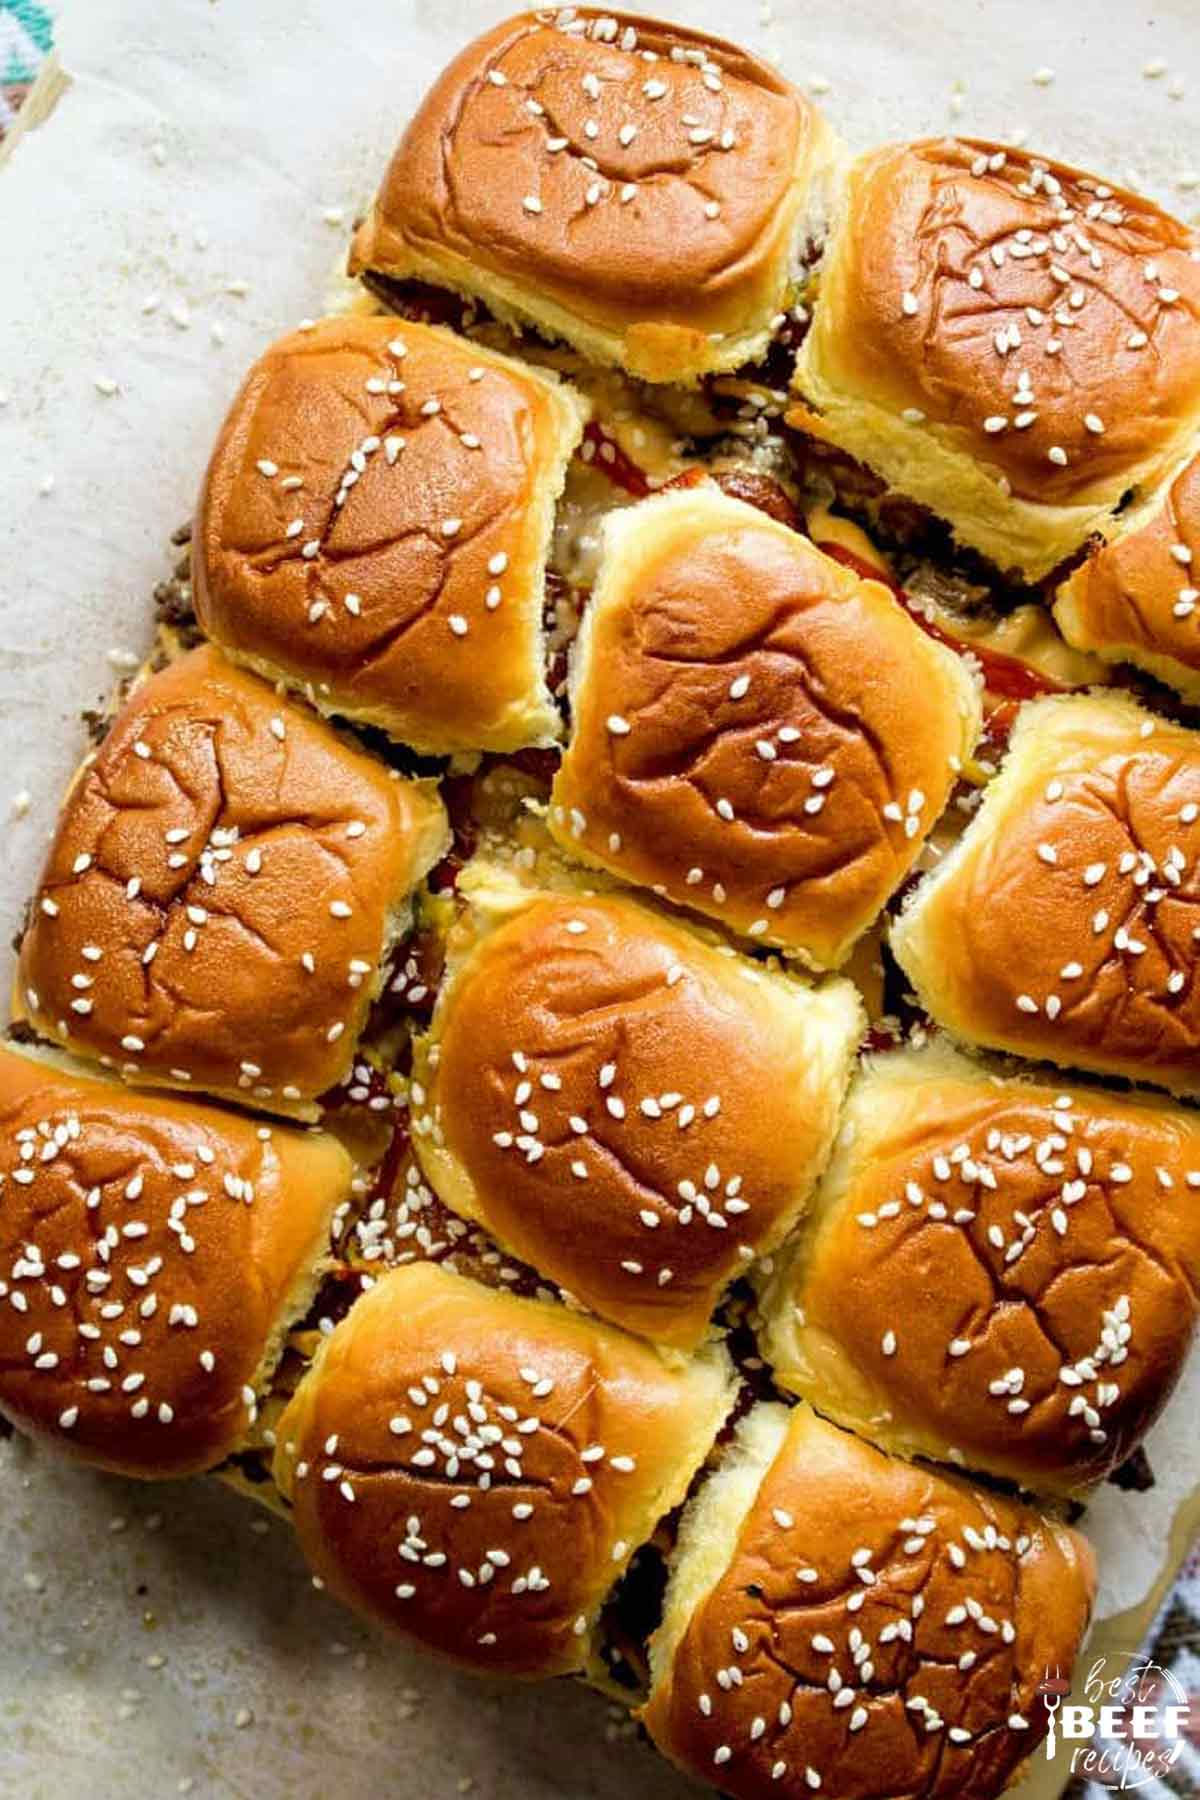 12 bacon cheeseburger sliders on Hawaiian rolls topped with sesame seeds